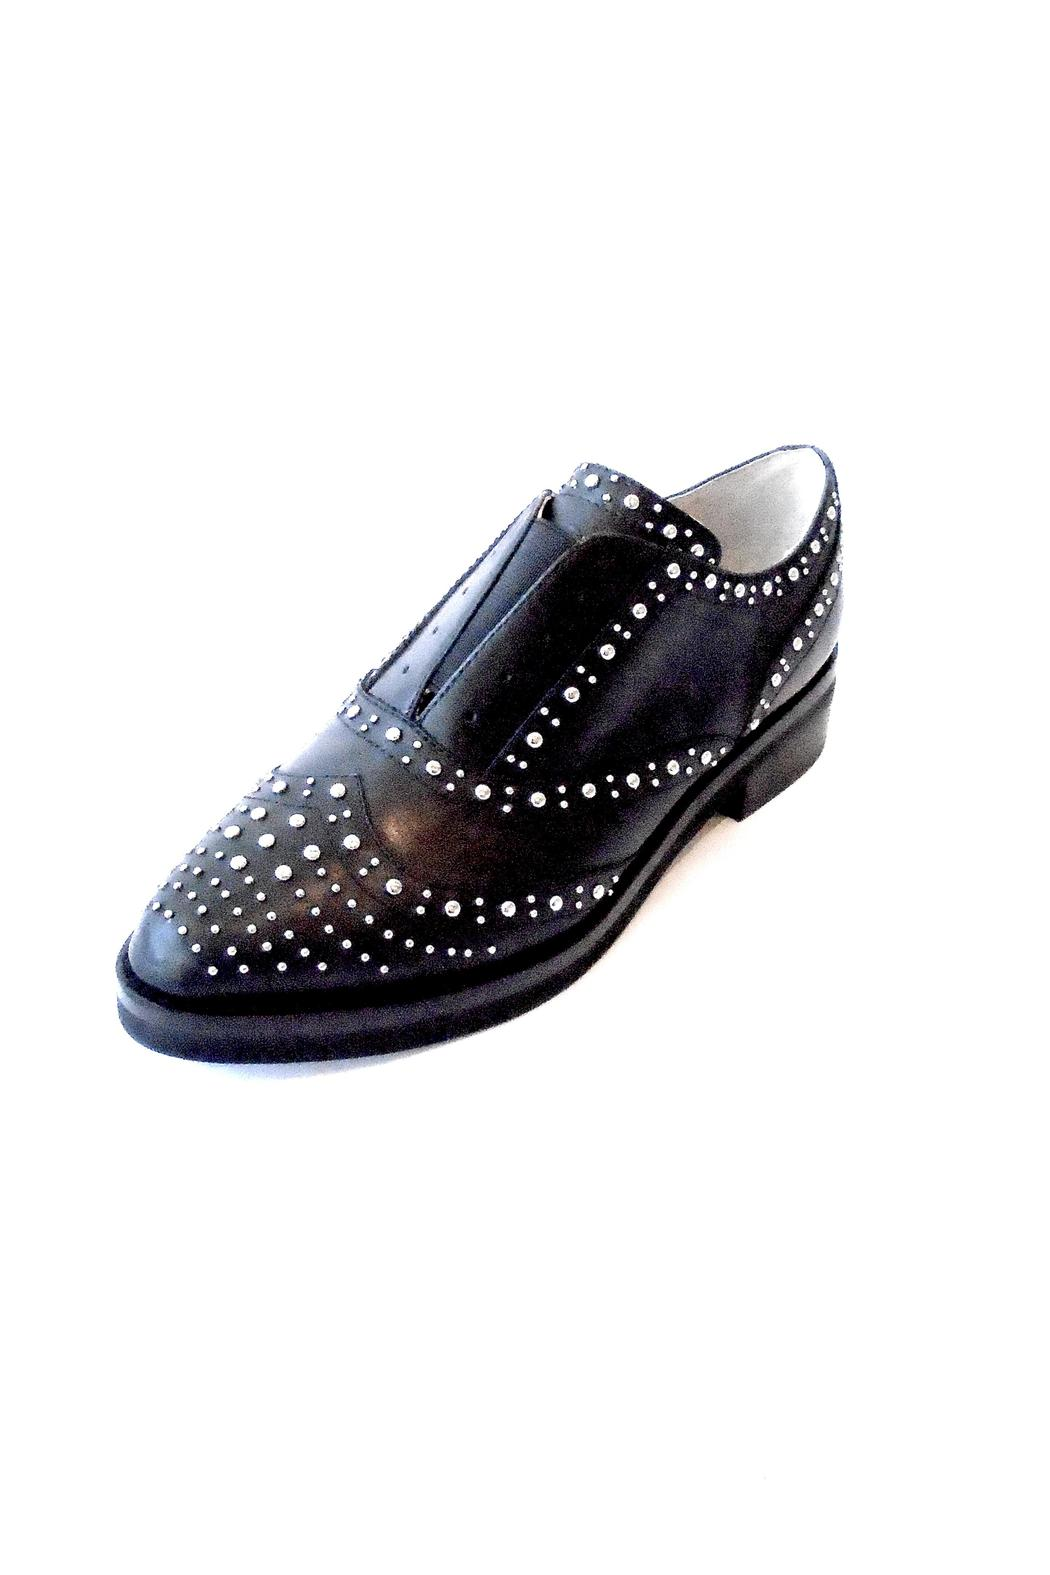 2f8645d096 French Connection Marissa Slip-On Brogue from Canada by durand's ...